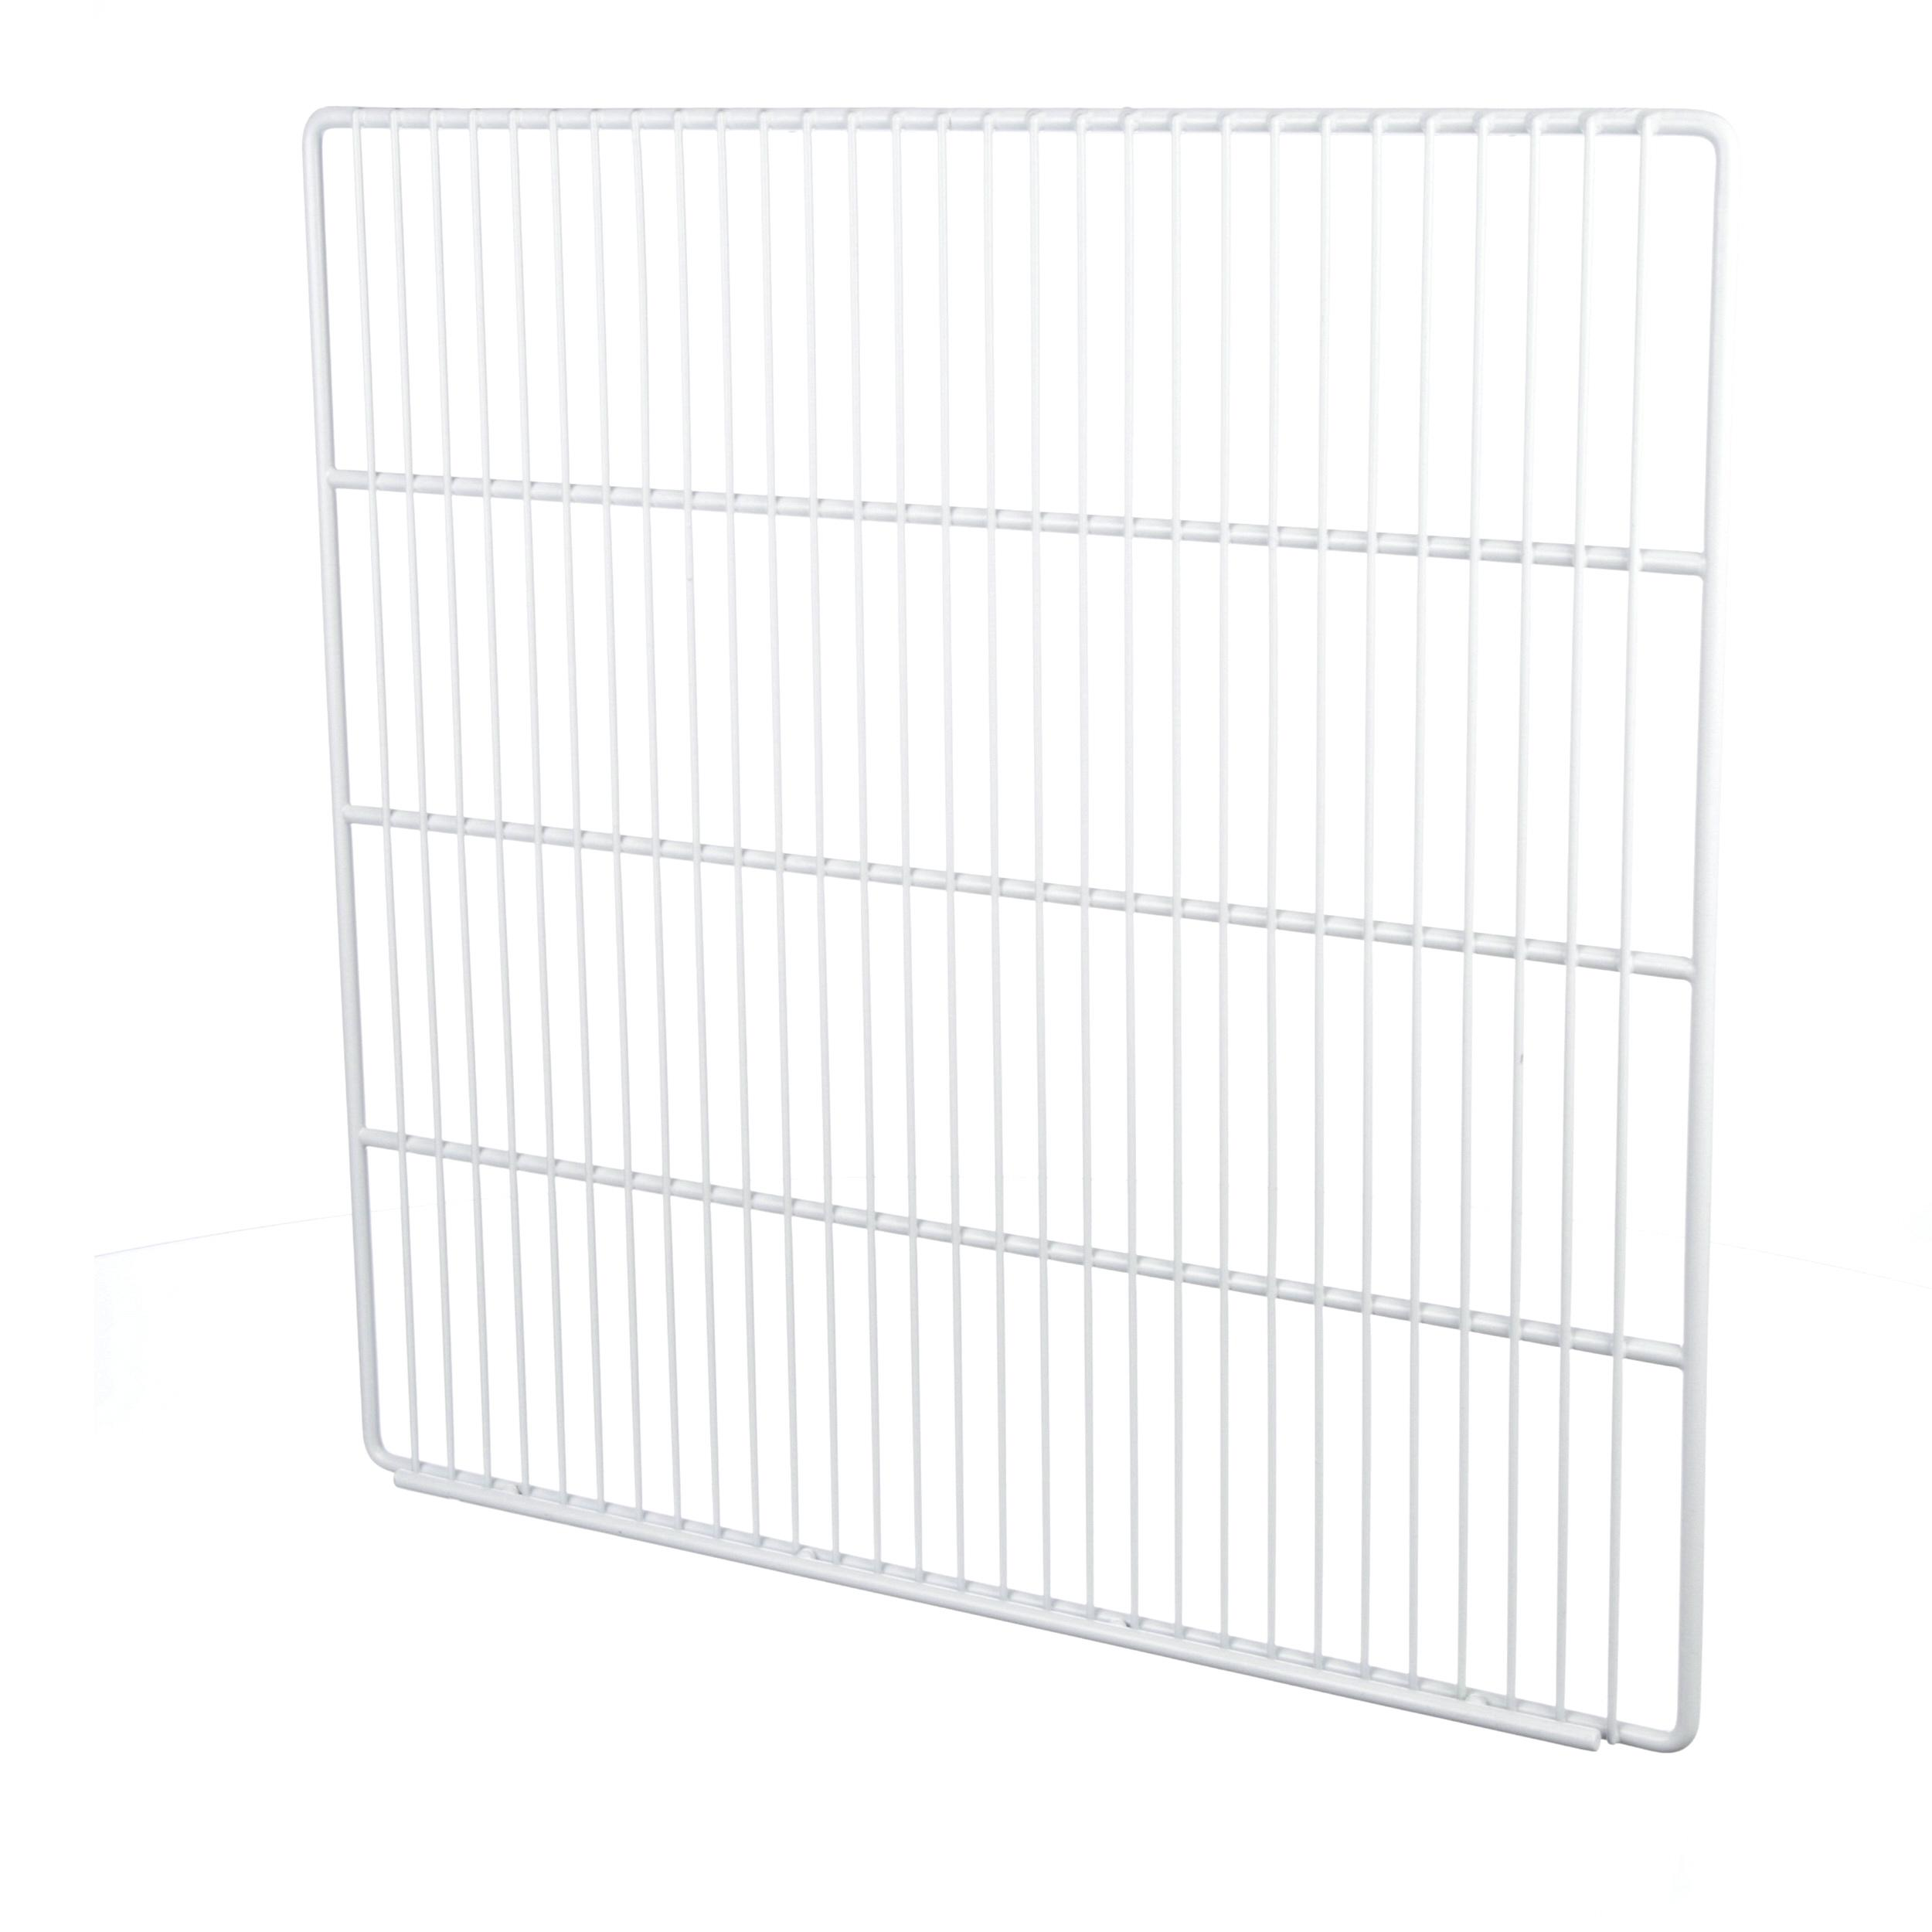 MASTER-BILT WIRE SHELF WHITE (SMB-430, 8